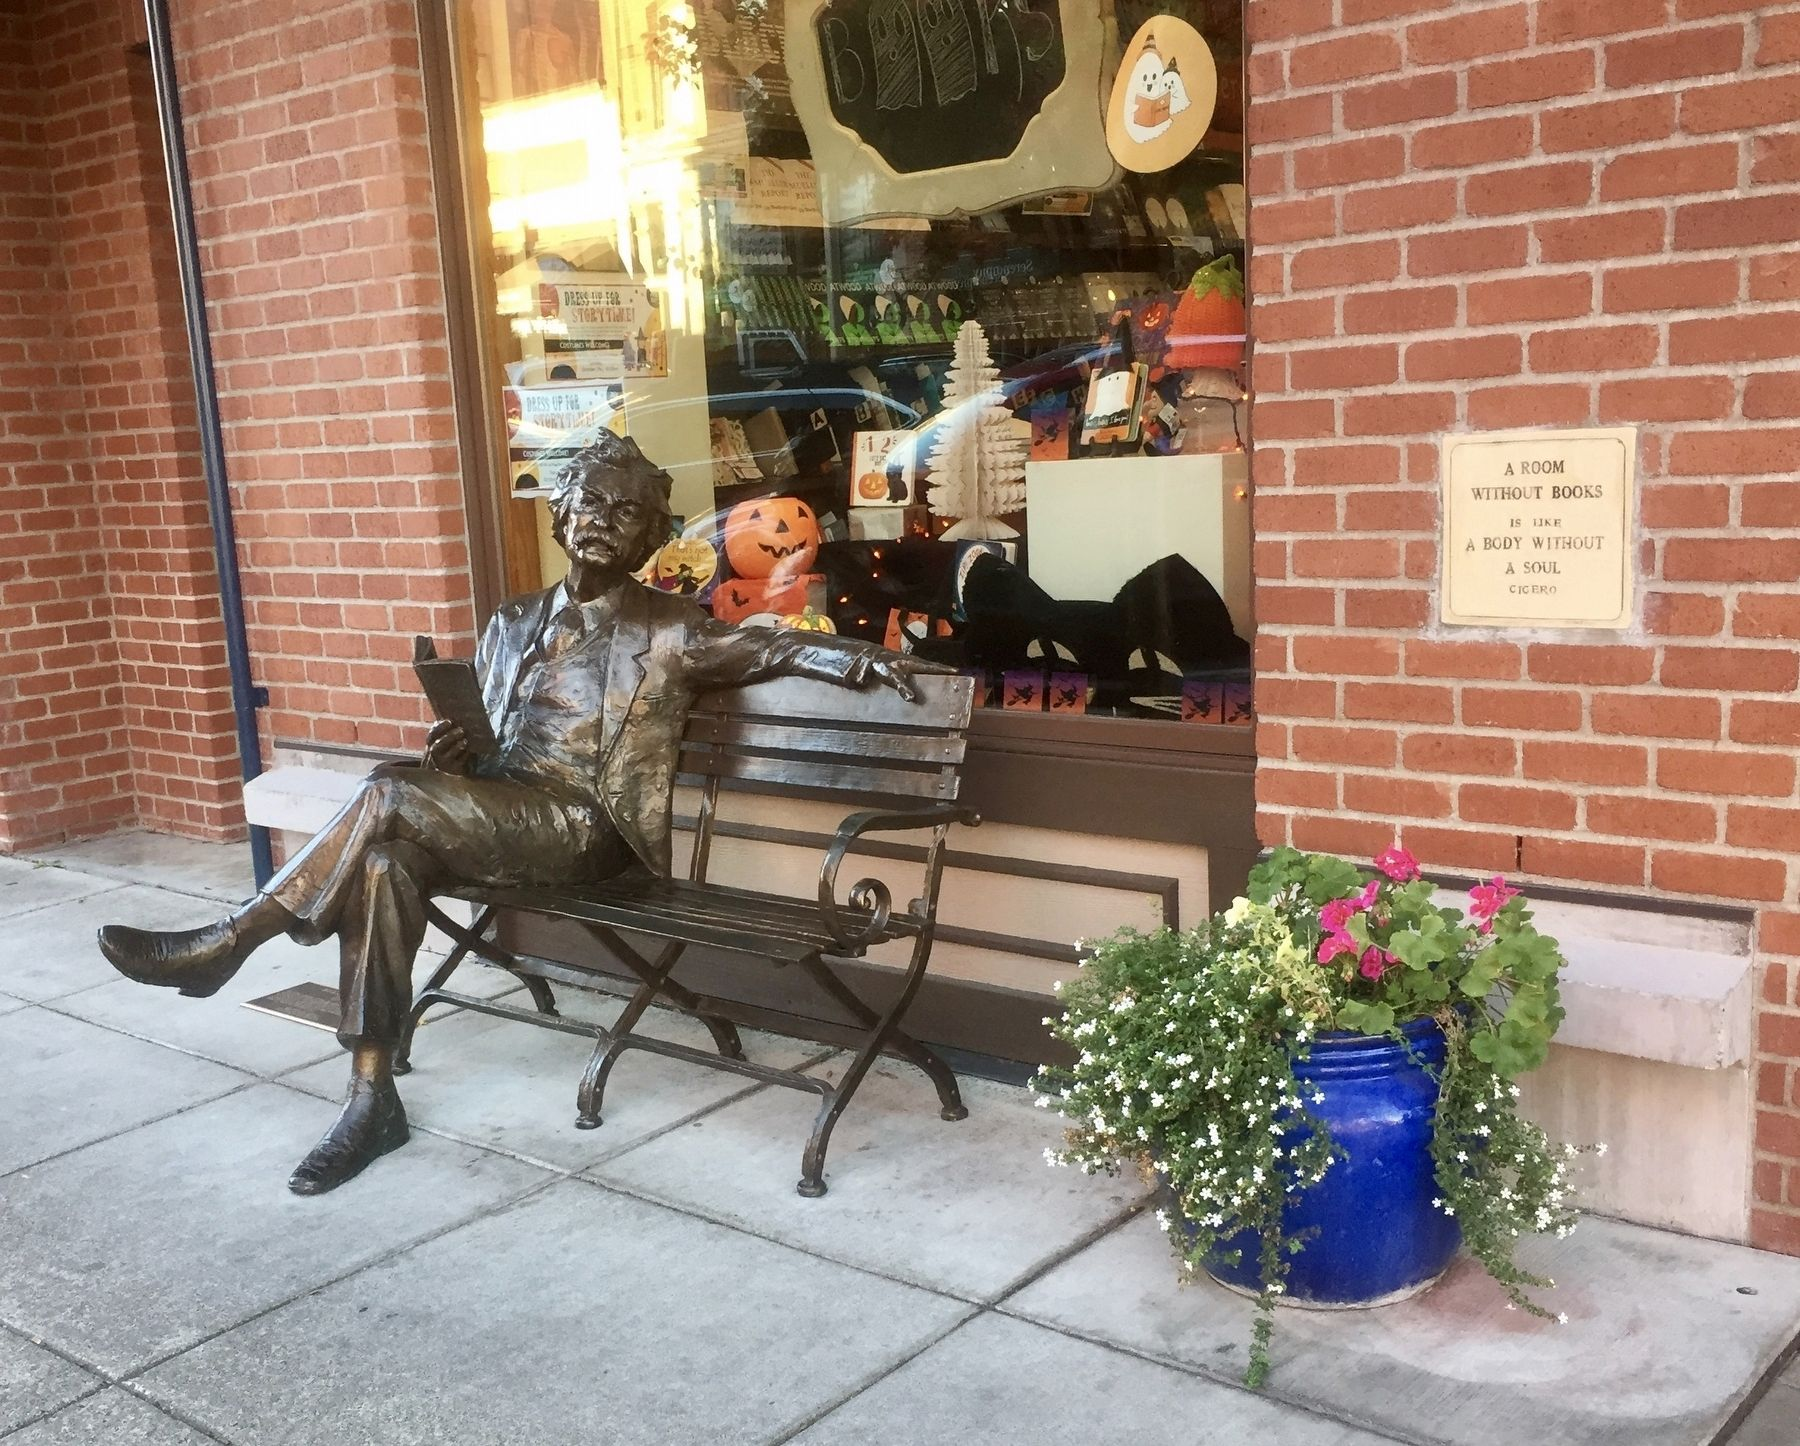 Photograph of the Mark Twain statue and historical marker on the sidewalk next to the bench.